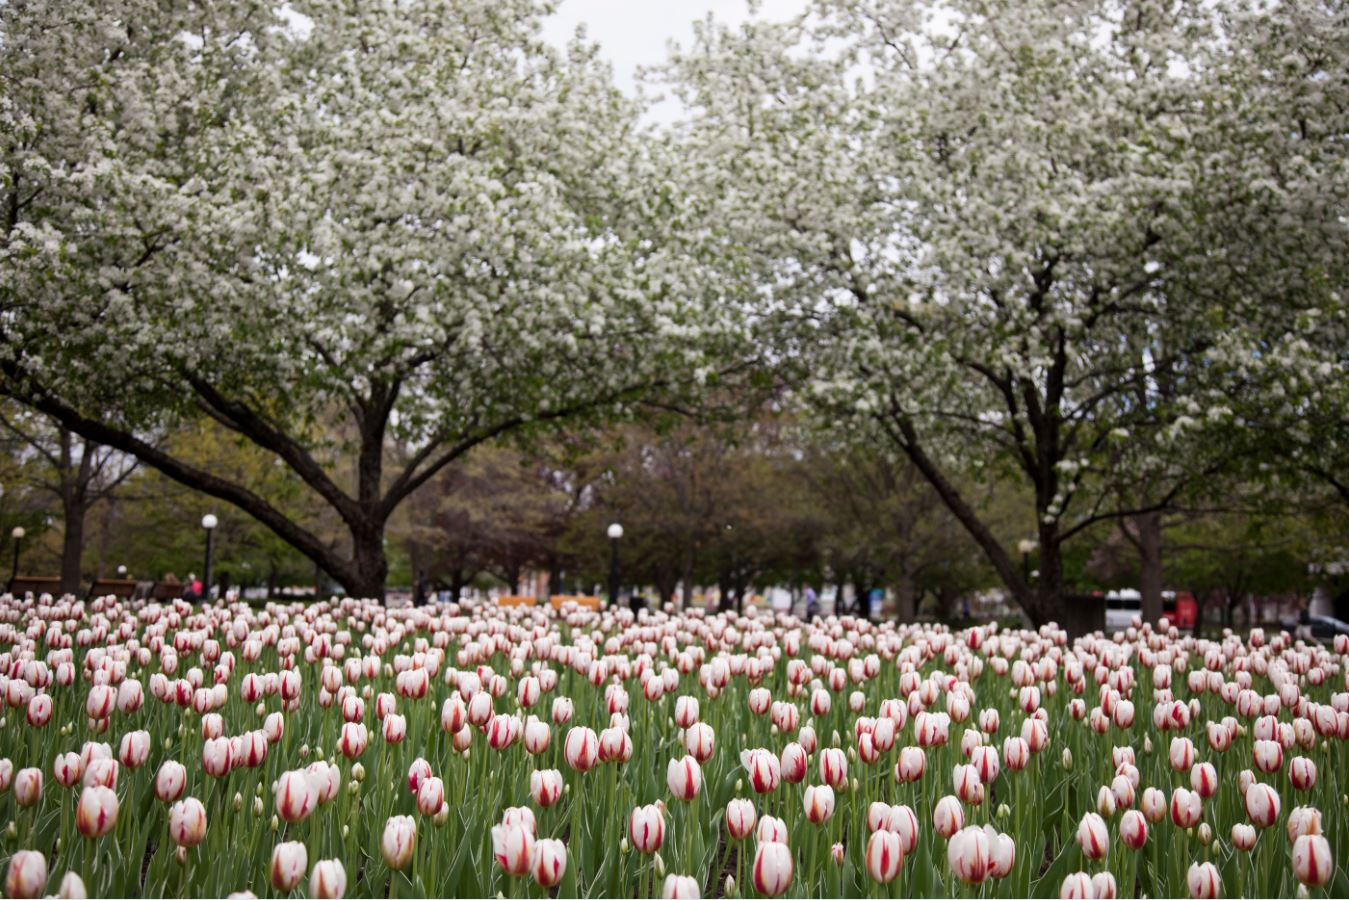 Tulip planting season is here | National Capital Commission